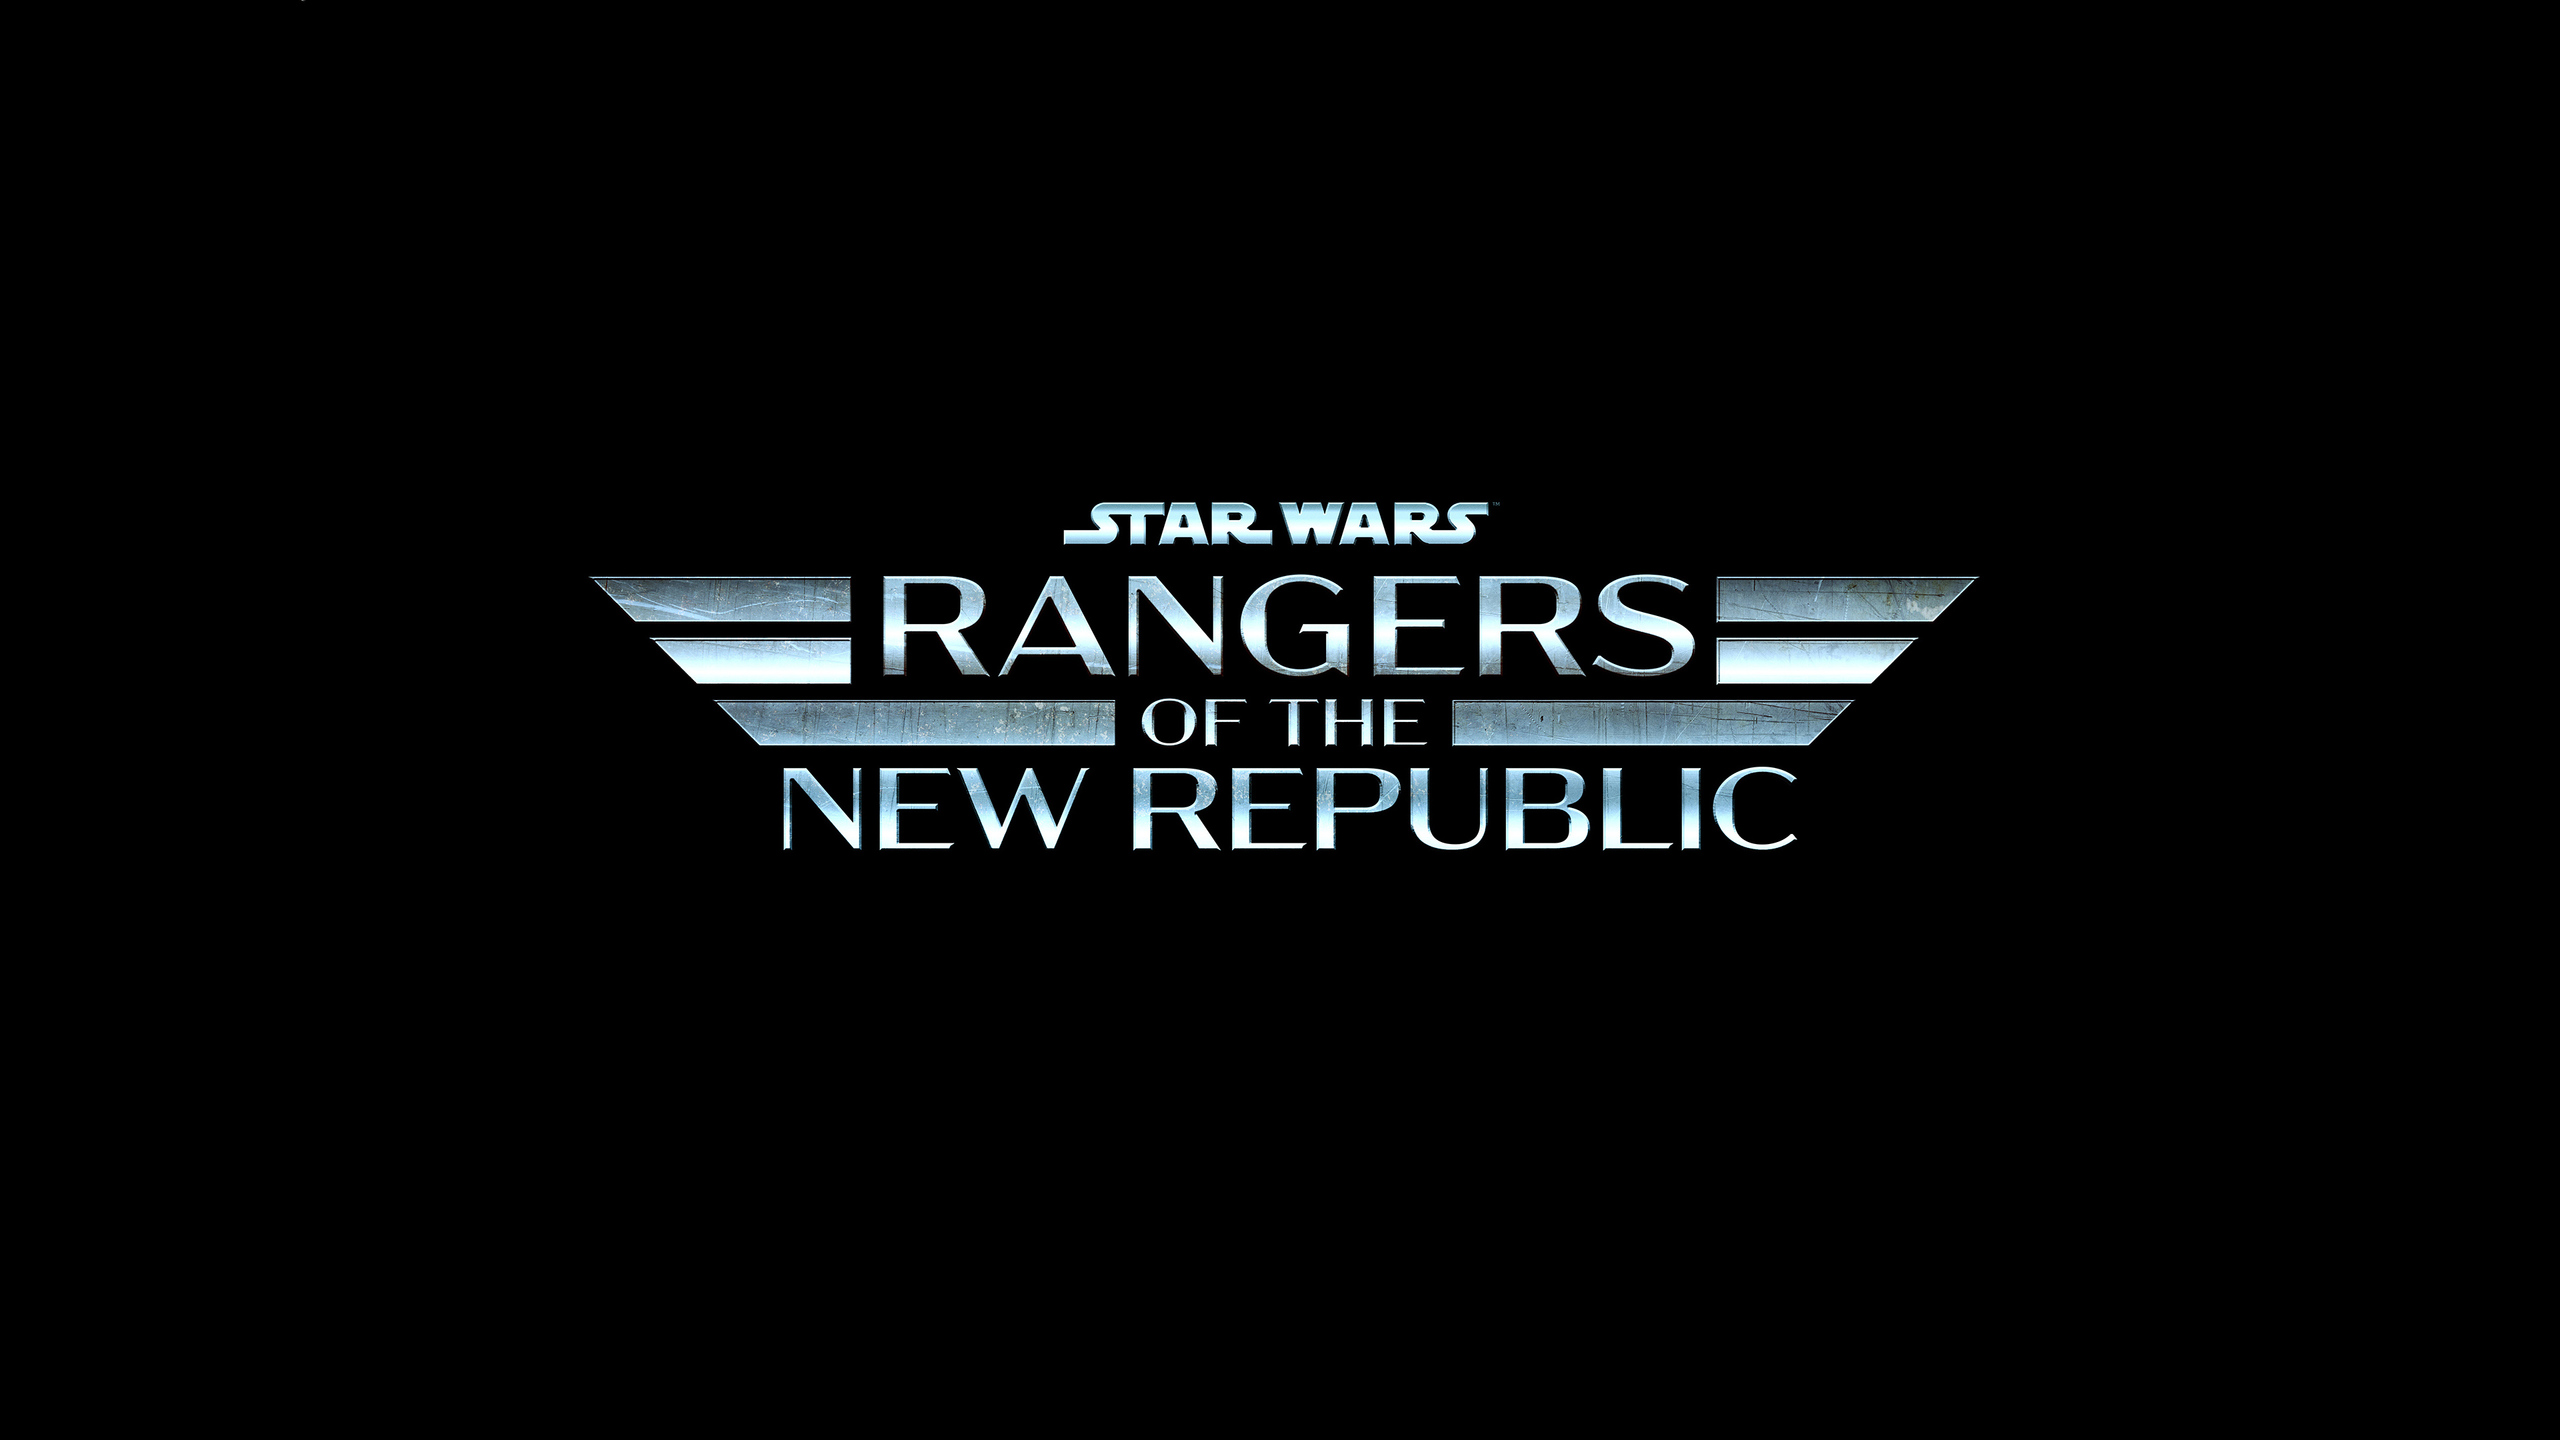 star-wars-rangers-of-the-new-republic-d7.jpg